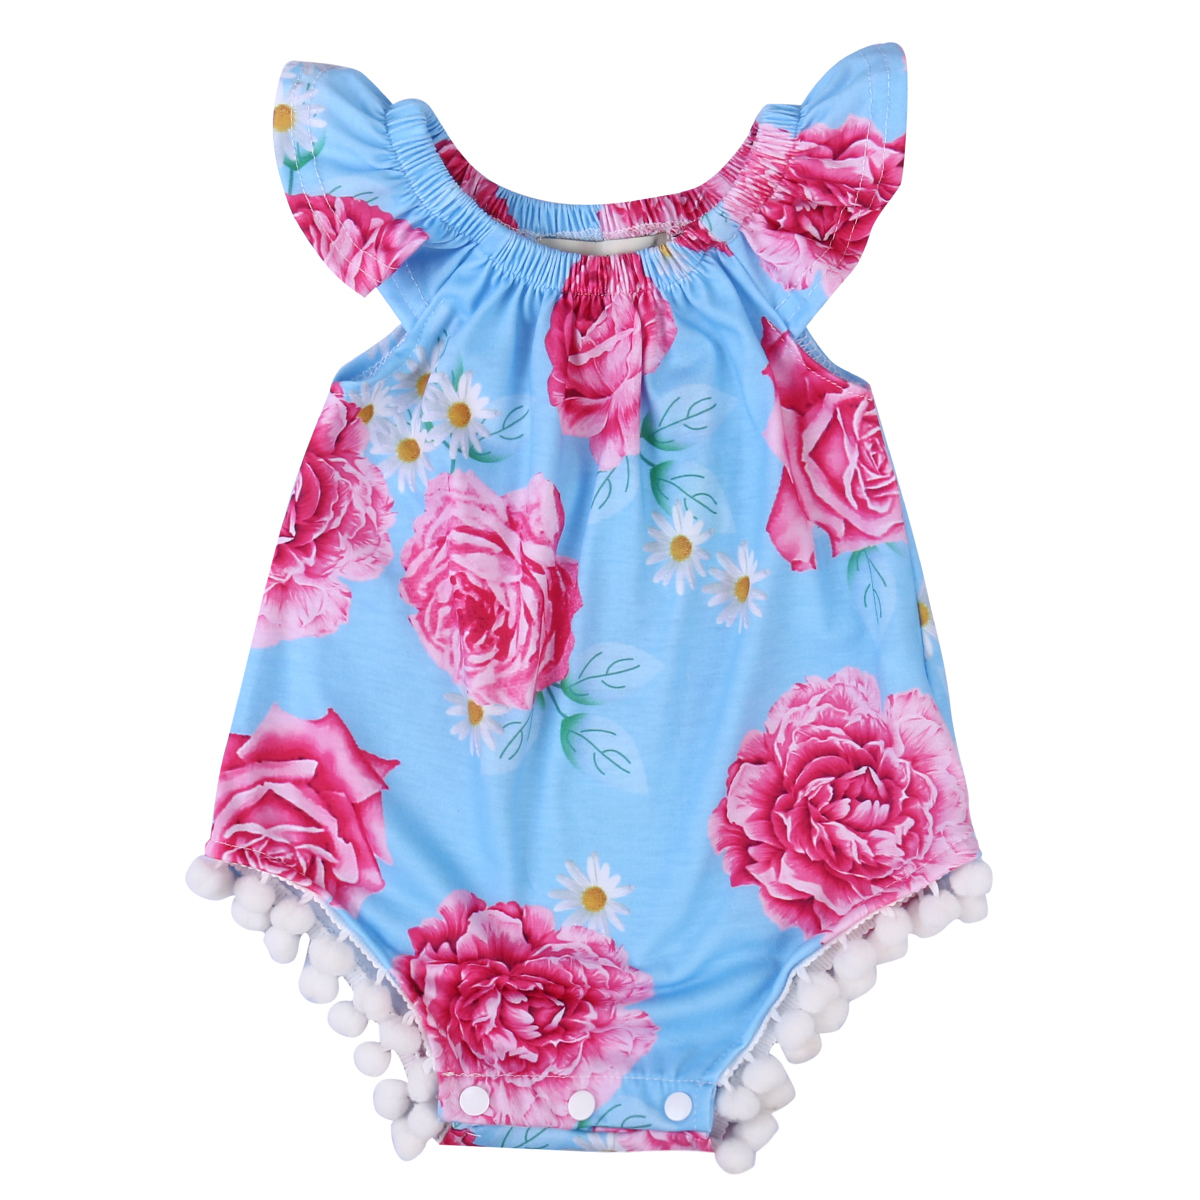 Cotton Newborn Infant Baby Girls Floral Romper Jumpsuit Clothes Outfits 0-24M